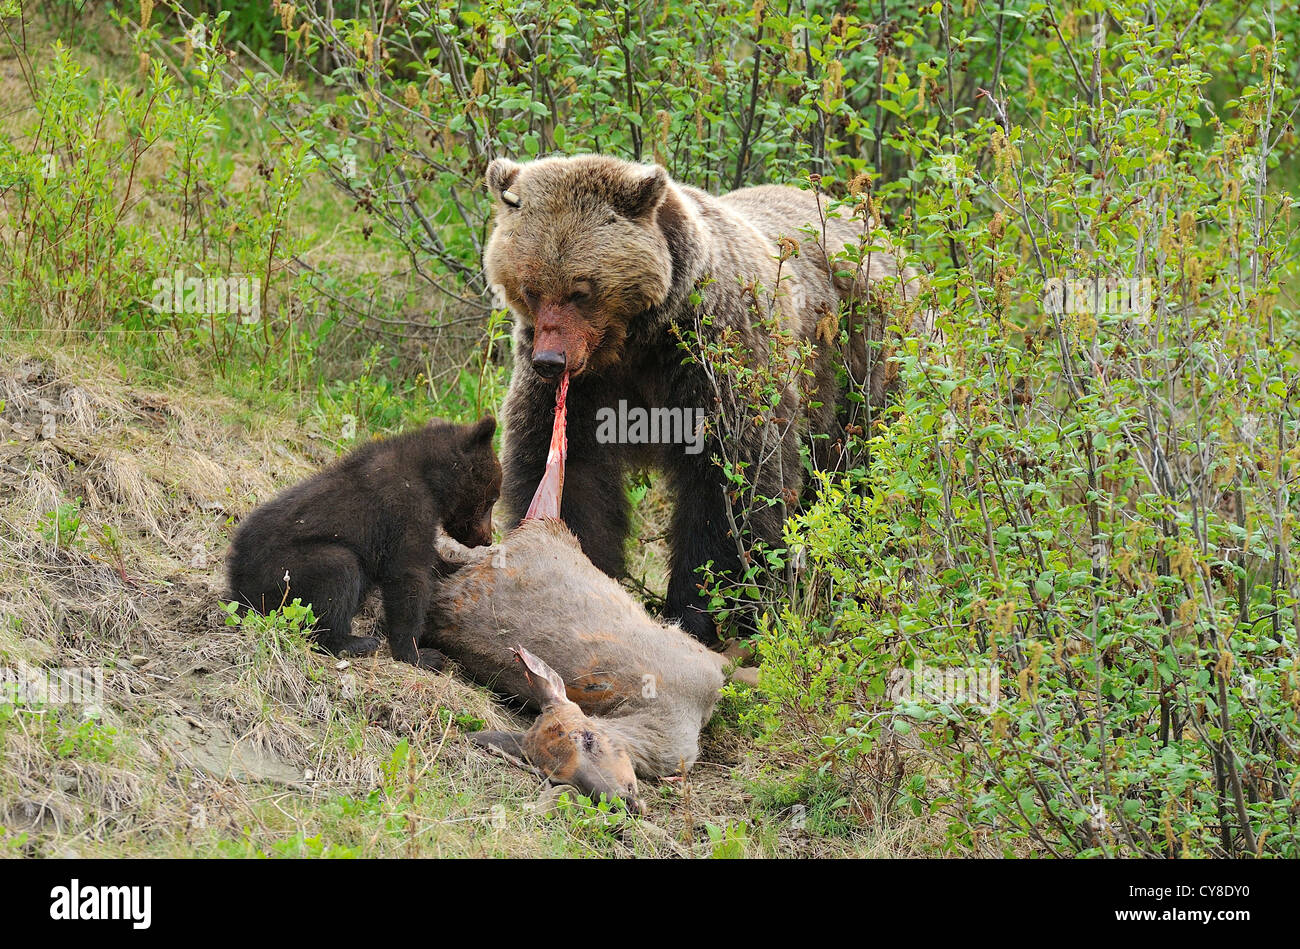 A Mother Grizzly Bear Shows Her Young Cub How To Feed On A Dead Deer